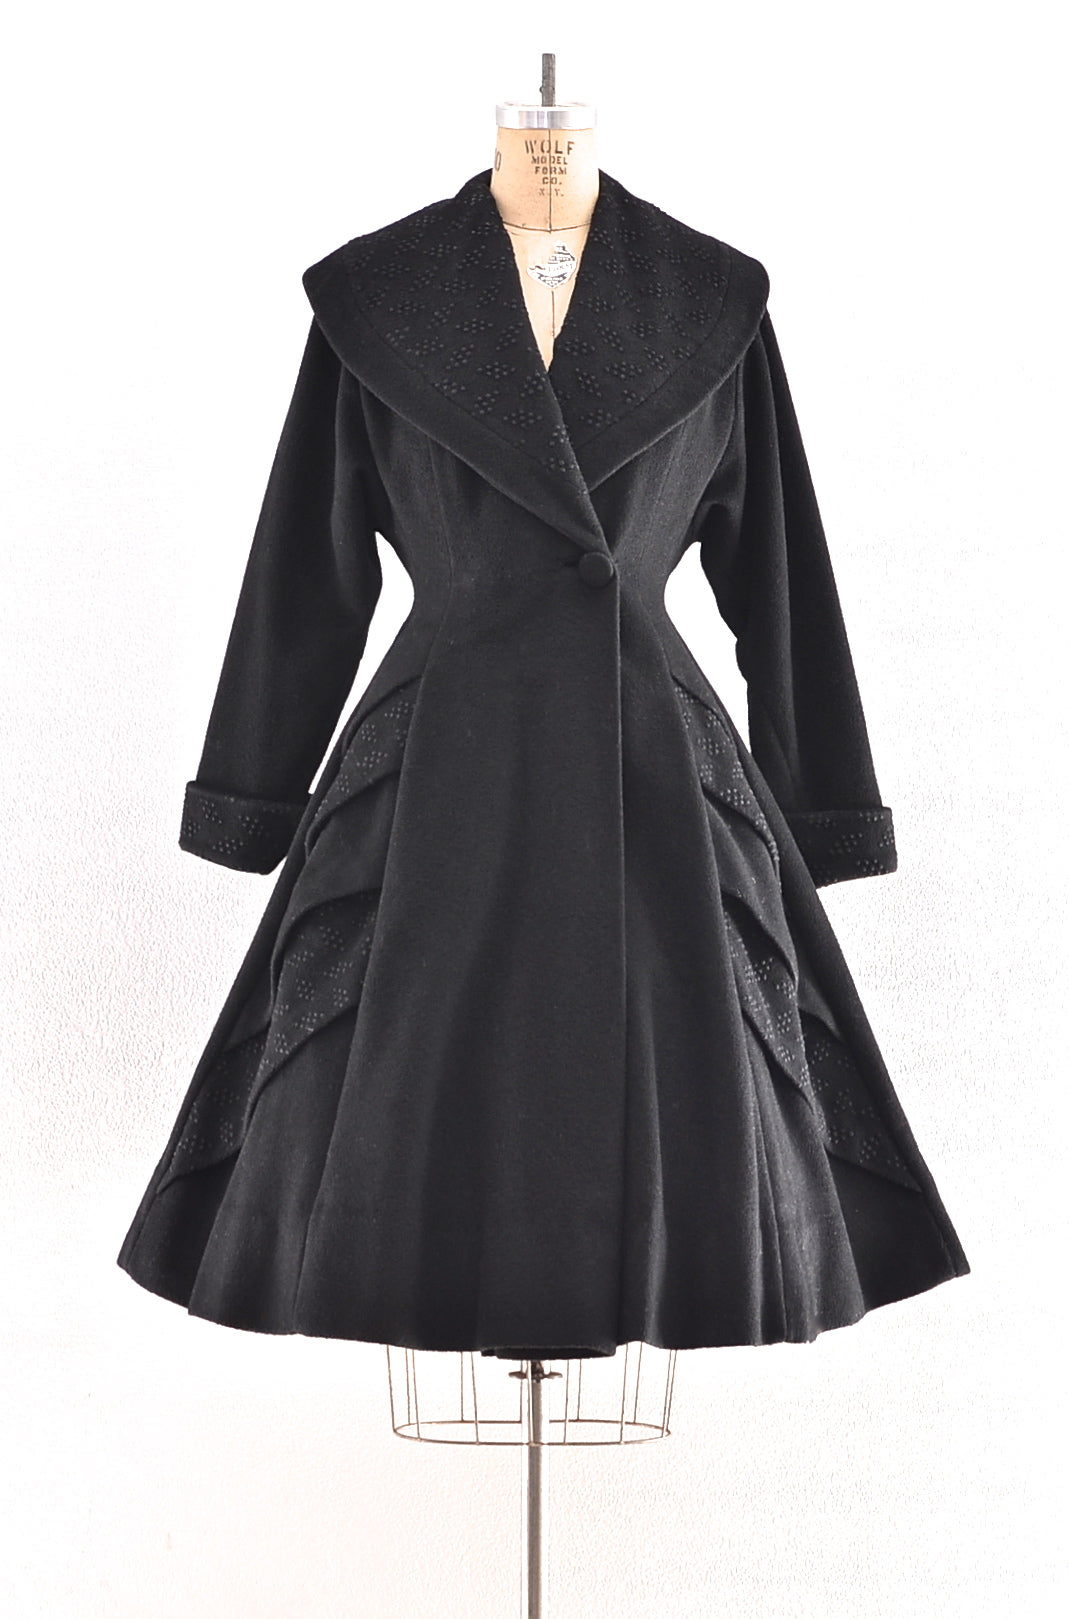 Lilli Ann Coat - Pickled Vintage